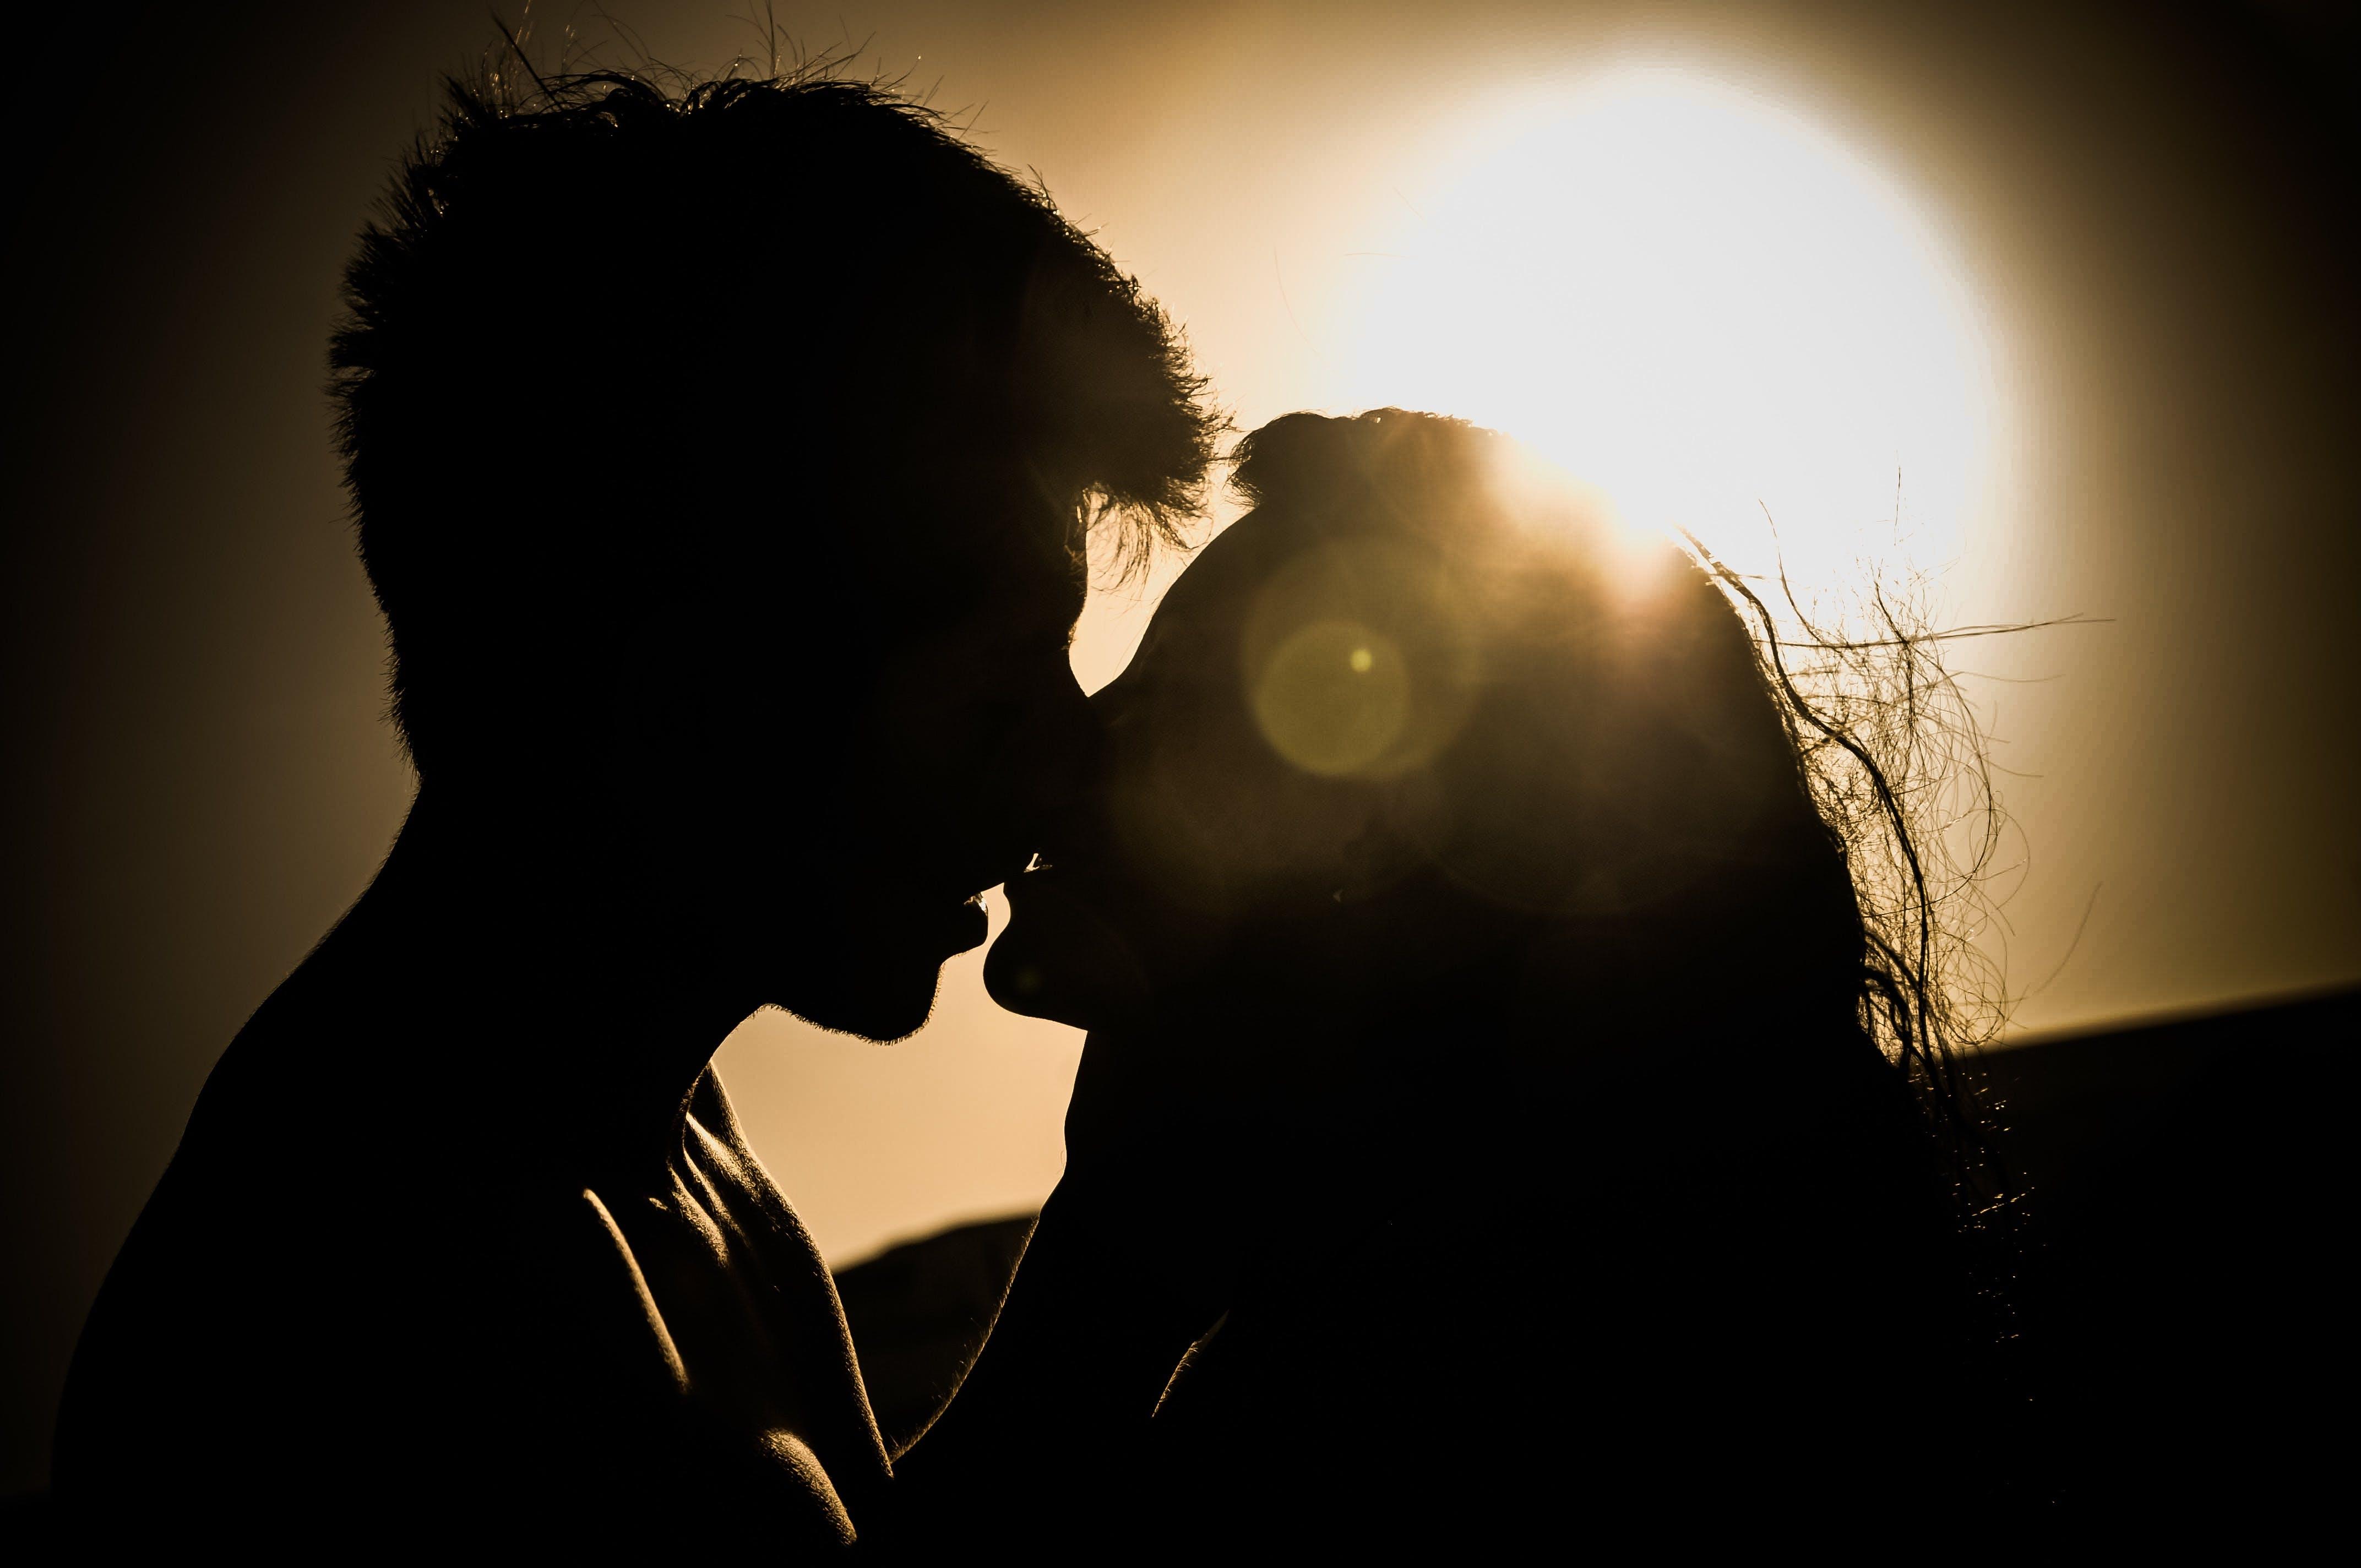 Silhouettes of Couple Kissing Against Sunset